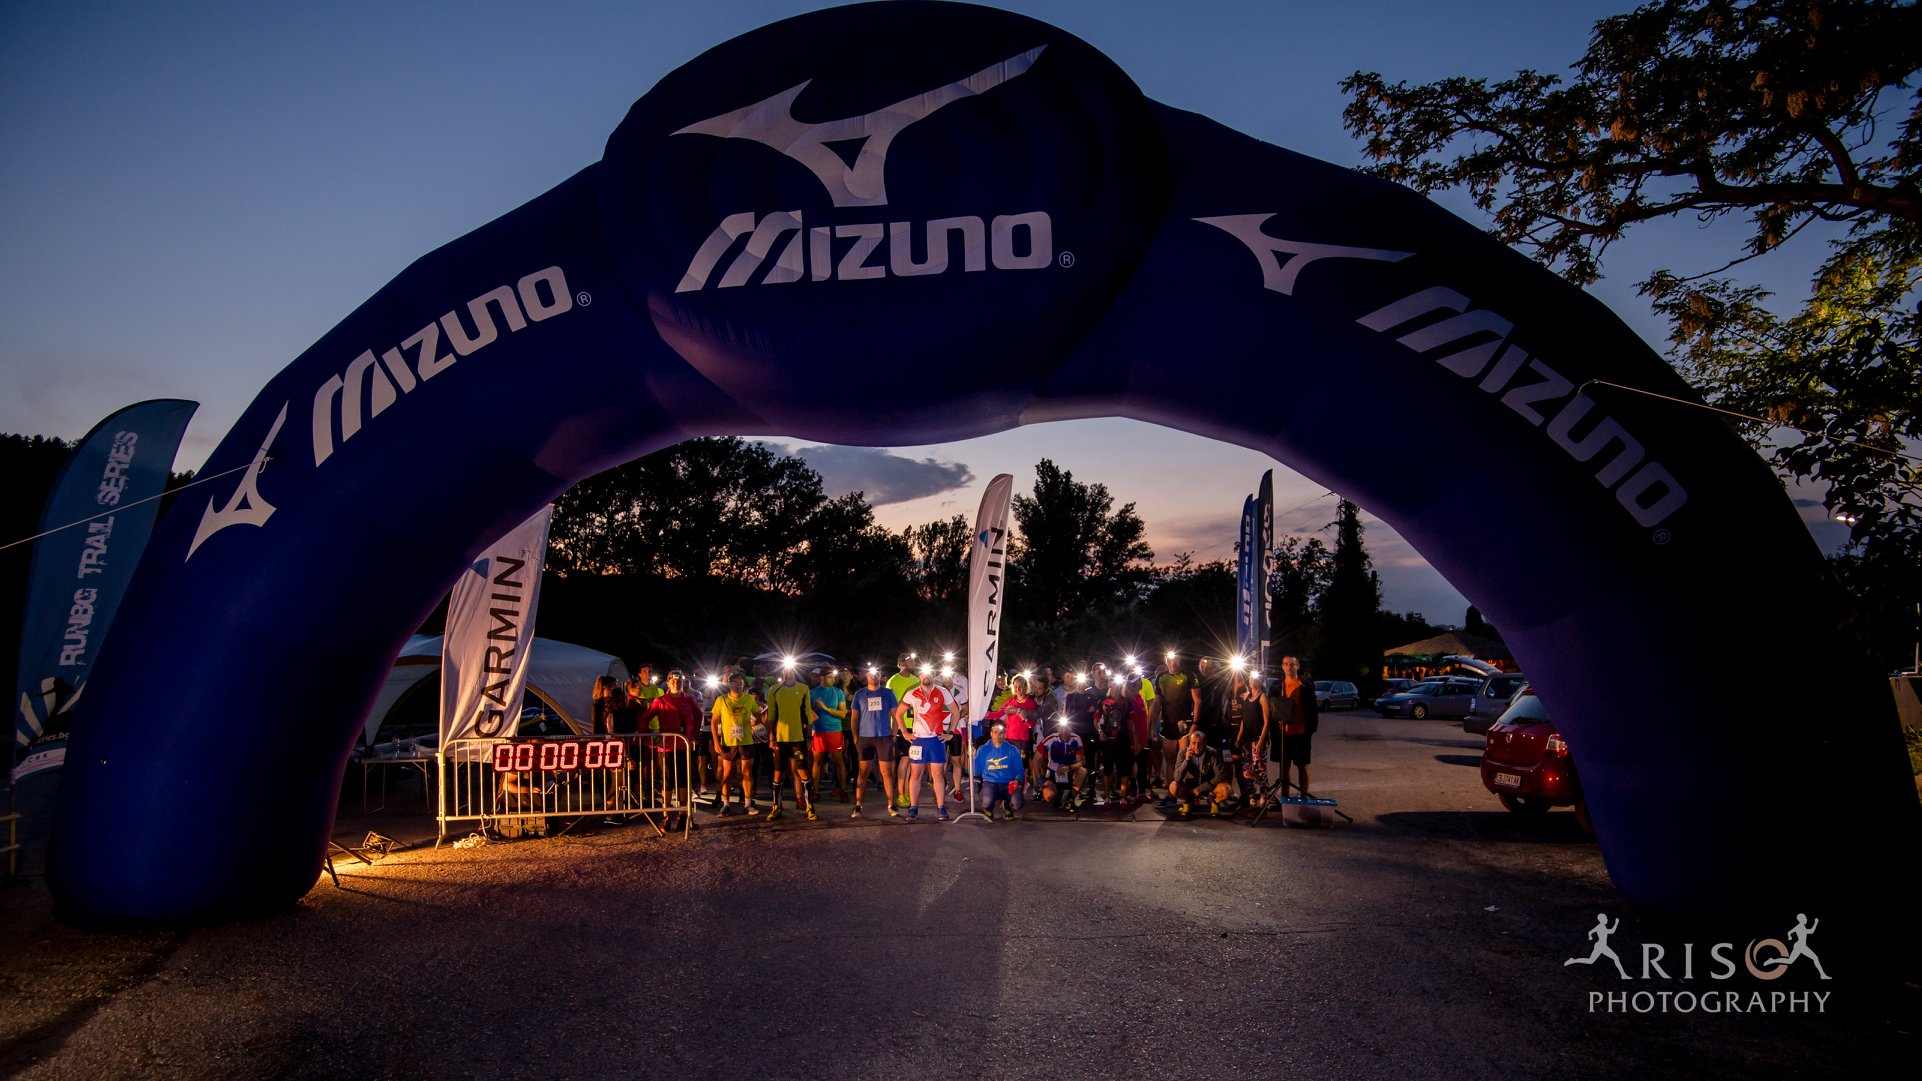 Another pre race photo CREDIT:  Kriosk Photography